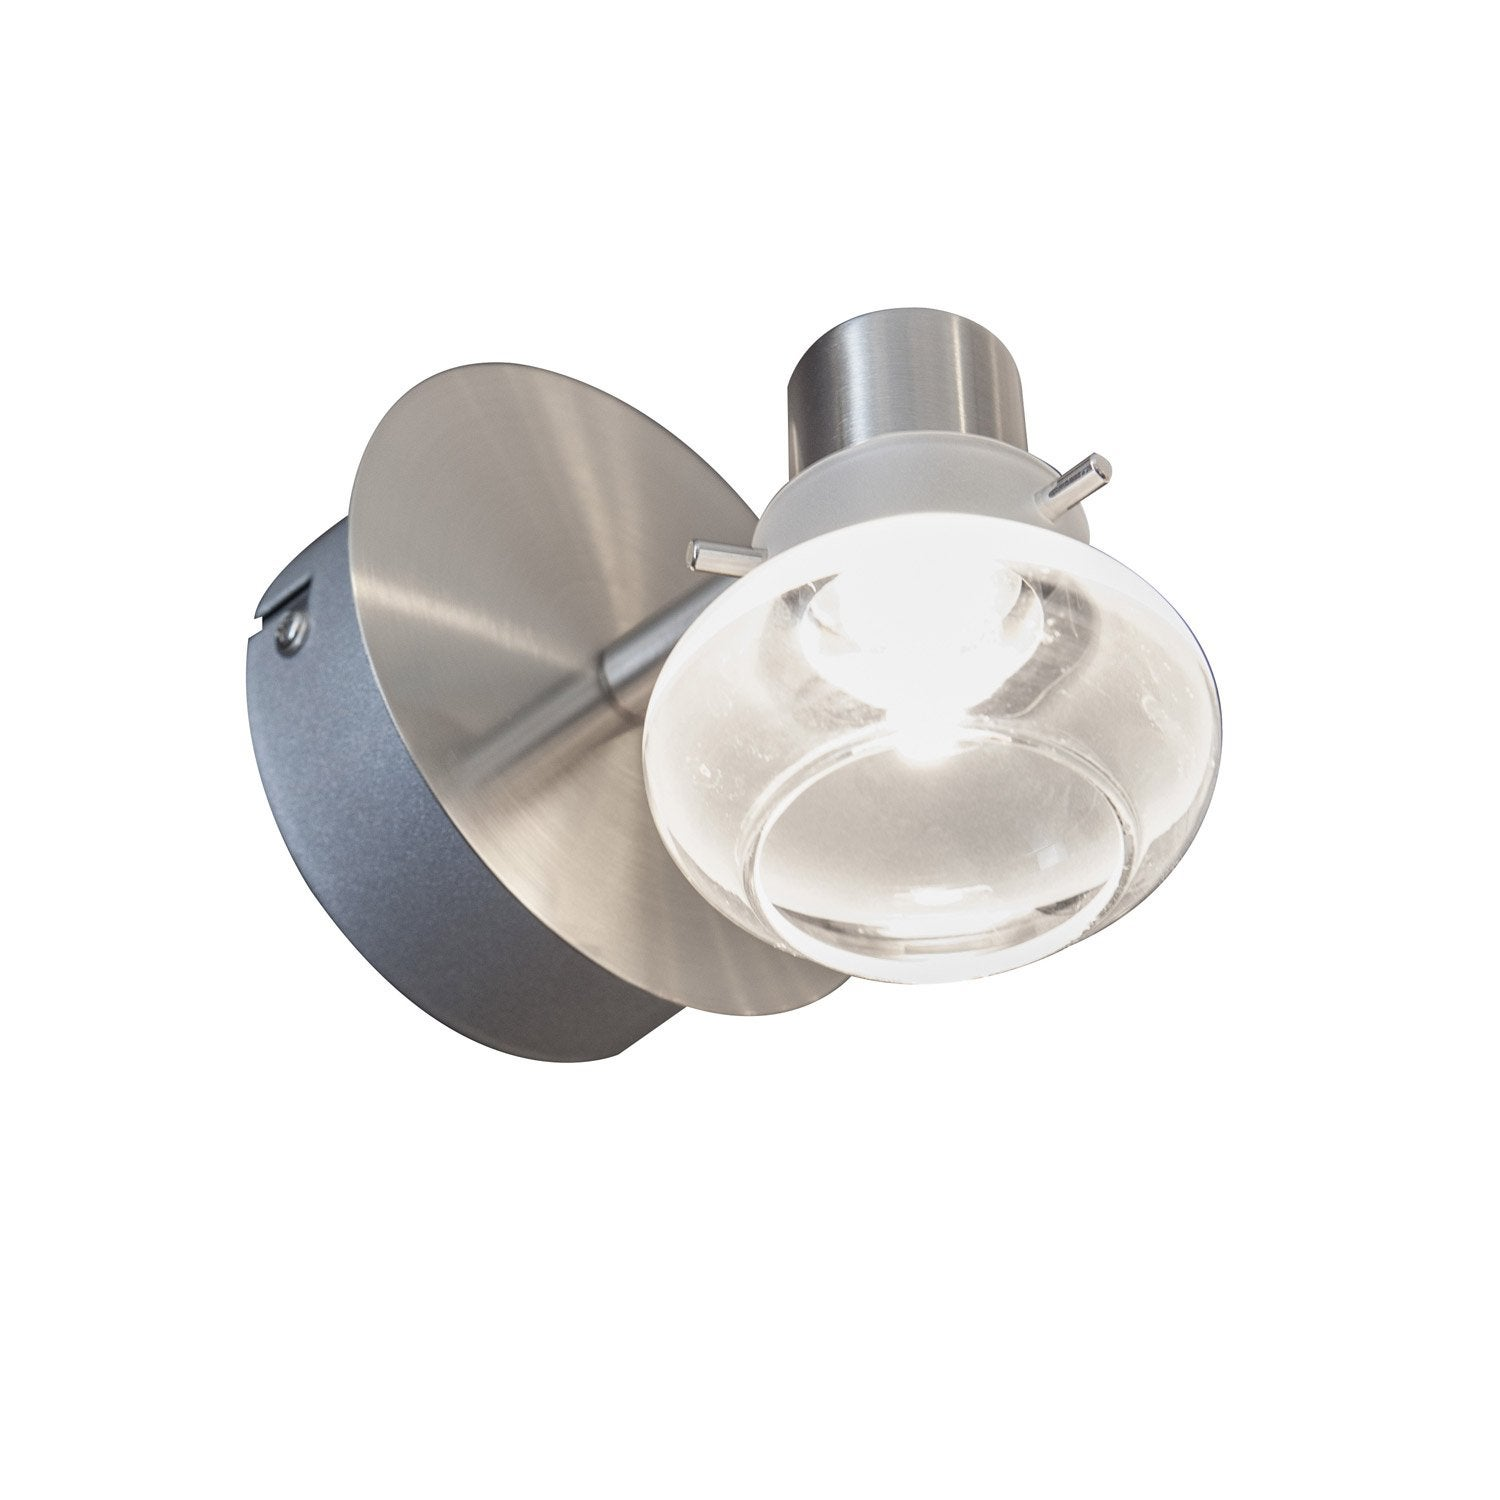 Spot pat re led int gr e 3 3 w chrom canzano eglo - Patere leroy merlin ...